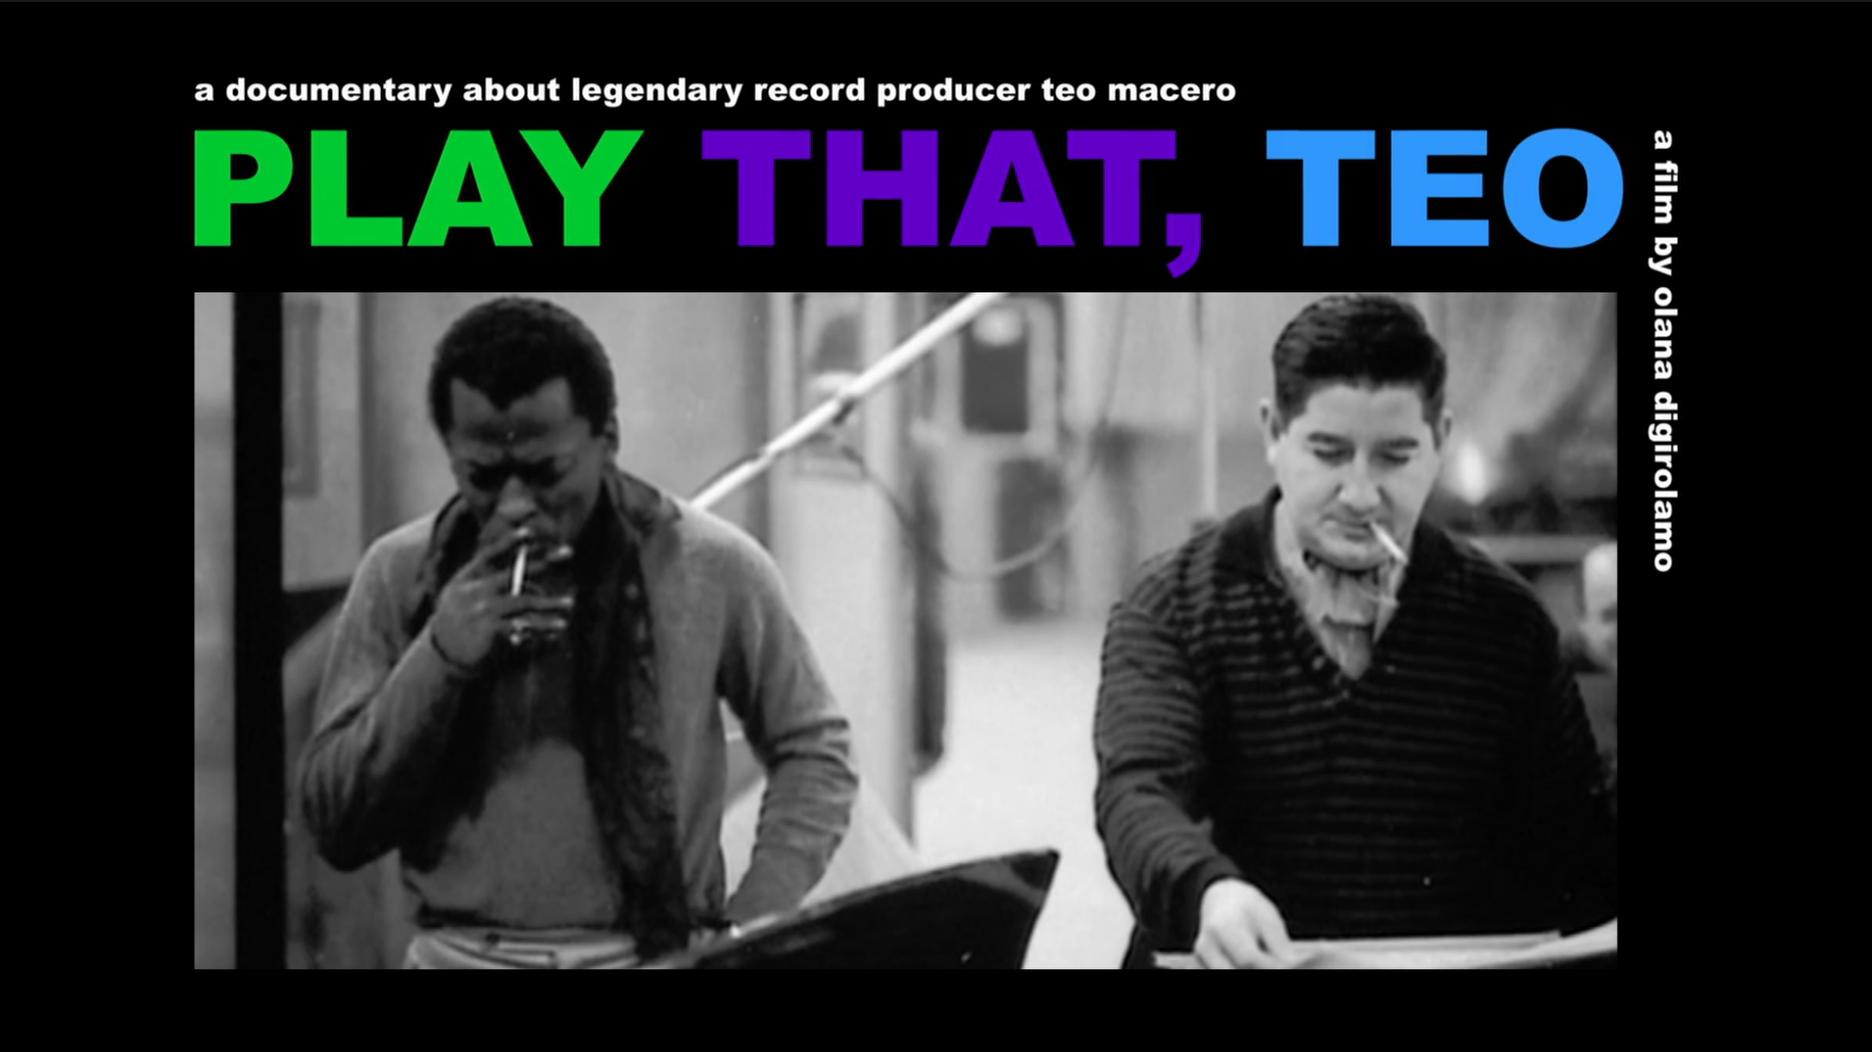 Miles Davis and Teo Macero in Play That, Teo